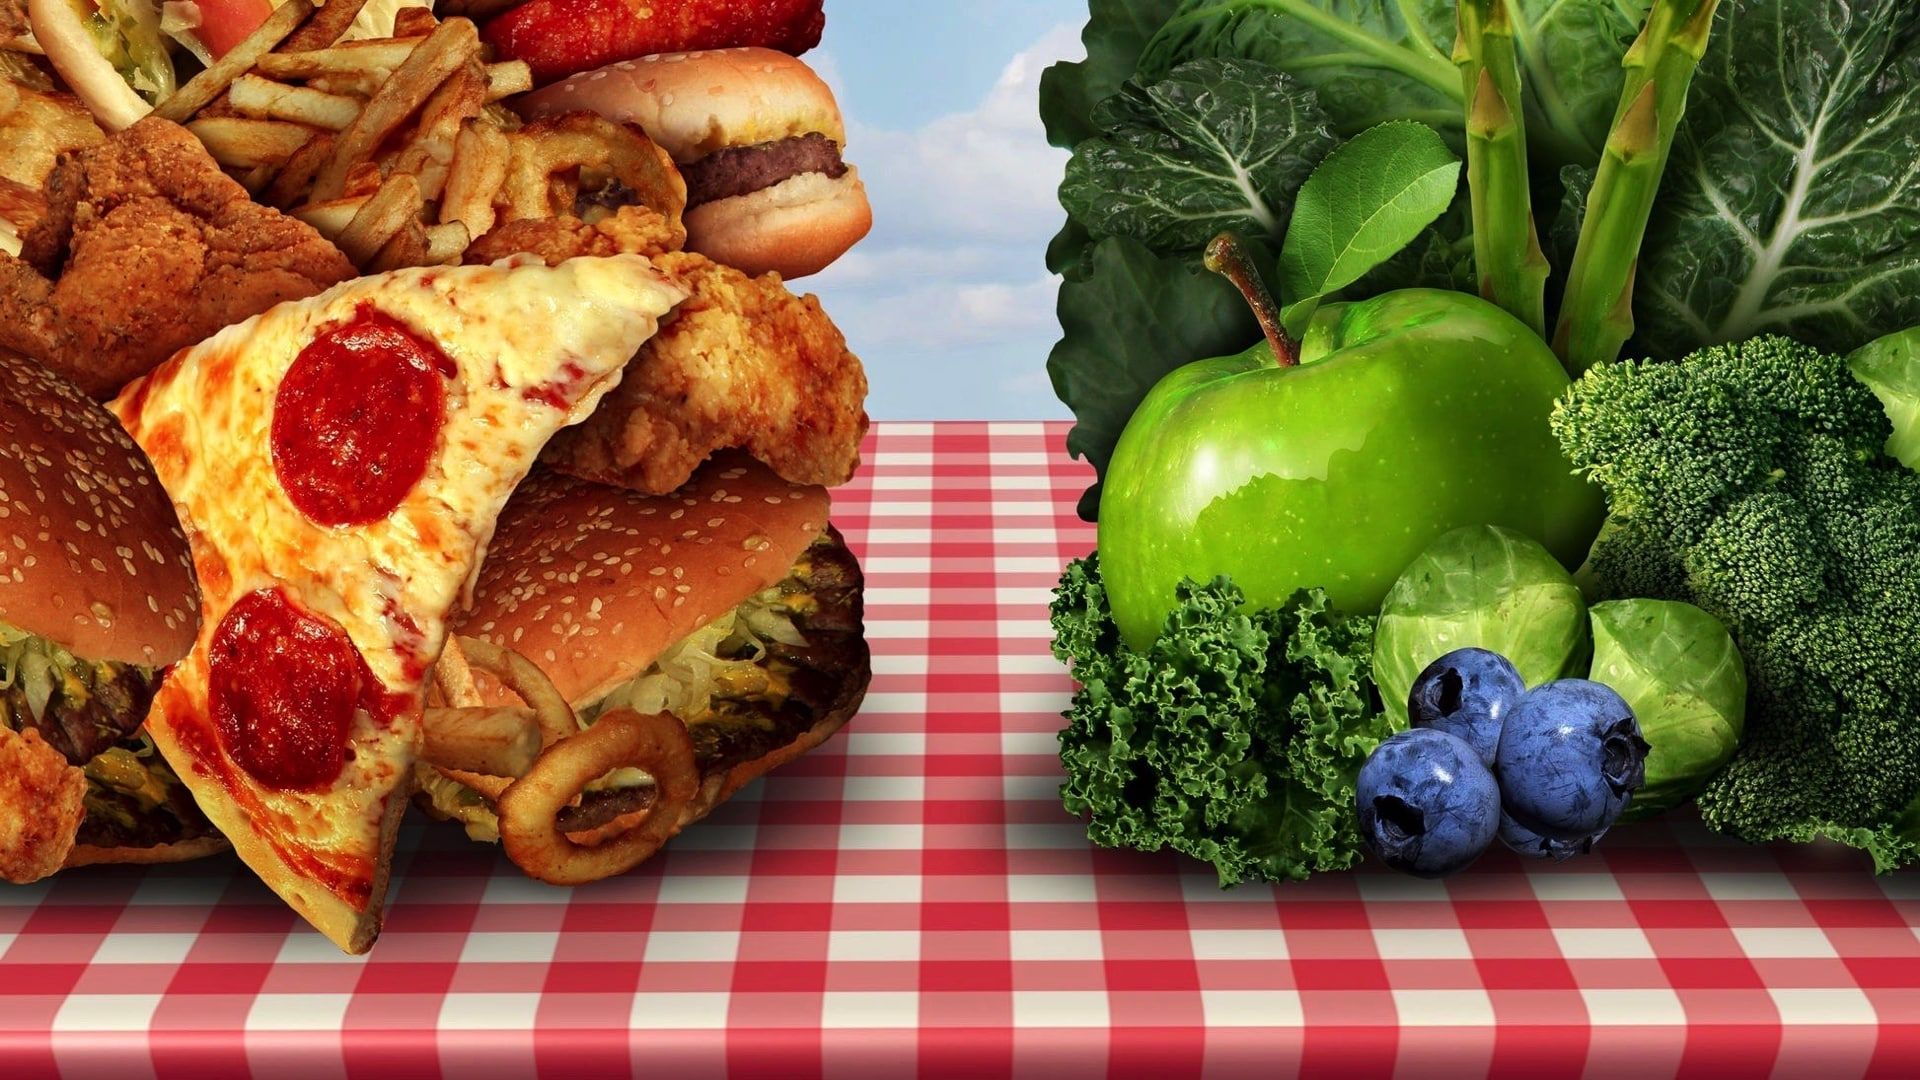 The Eat More, Weigh Less Diet